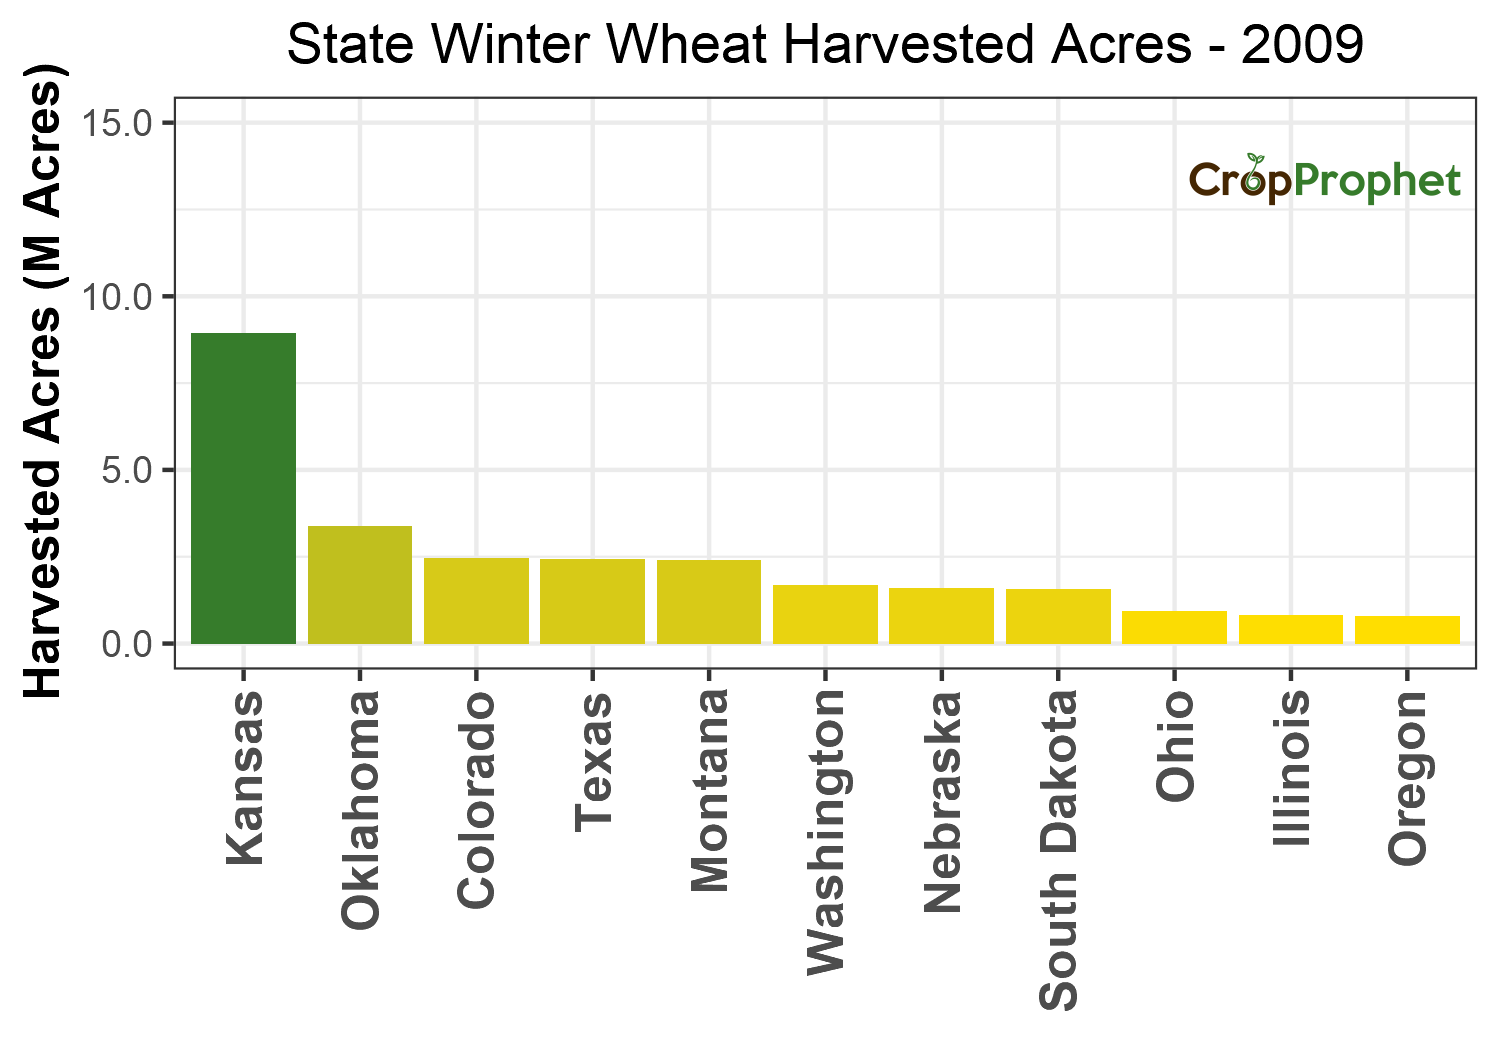 Winter wheat Harvested Acres by State - 2009 Rankings